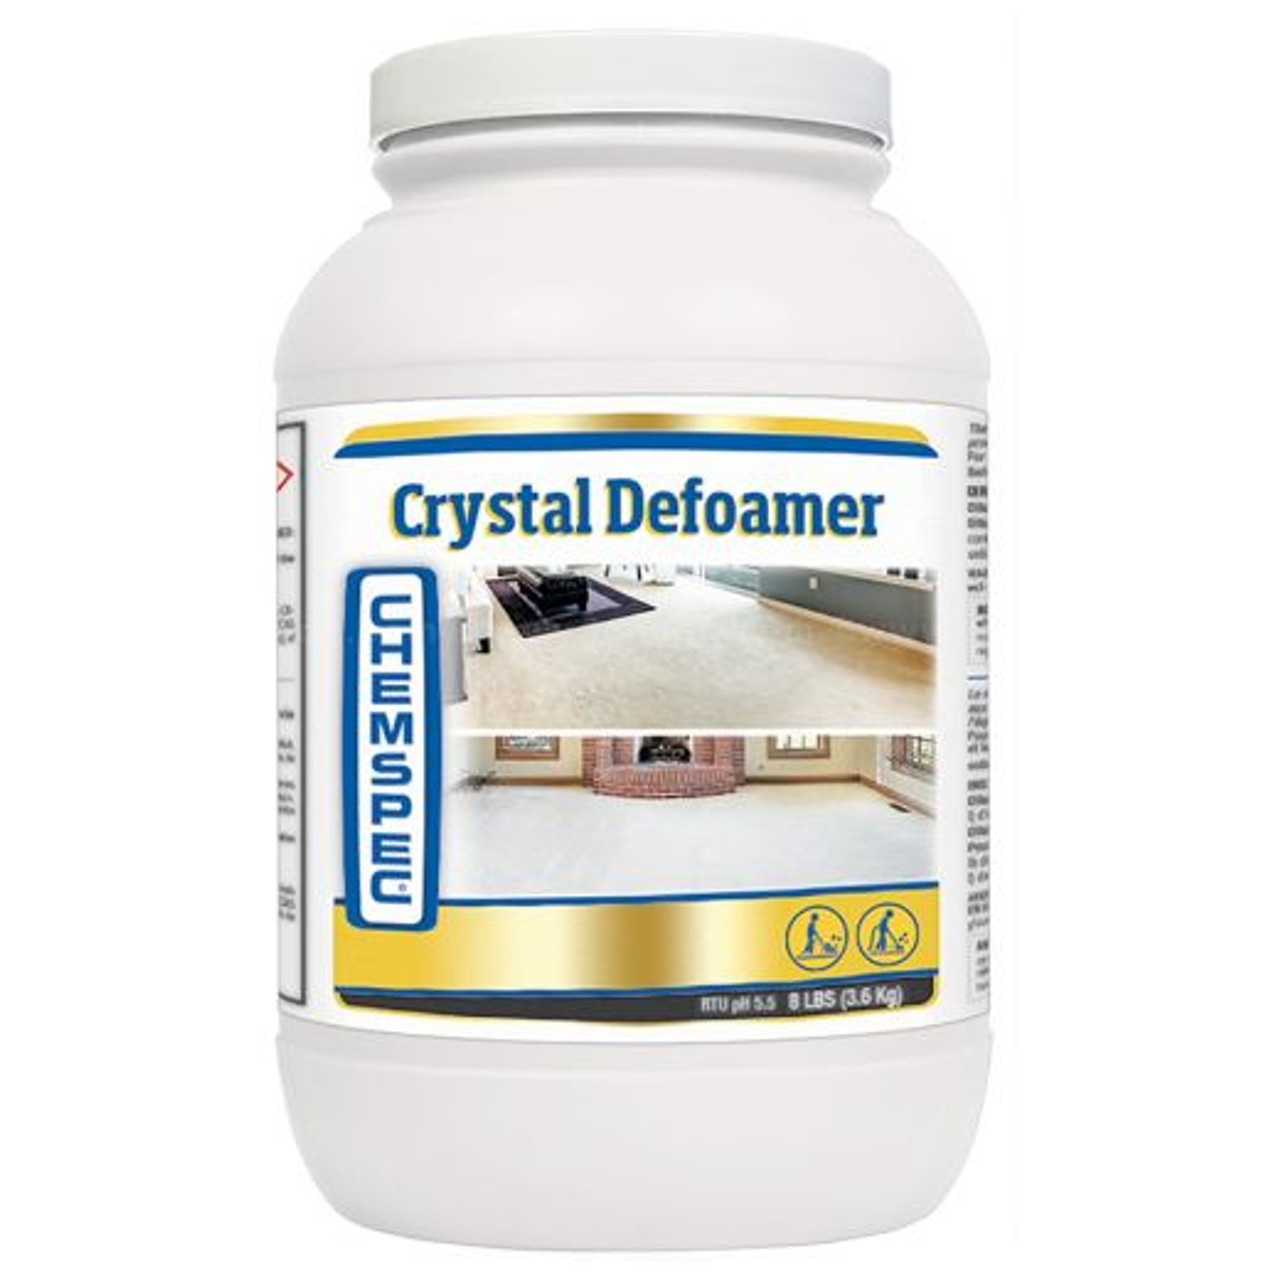 Crystal Defoamer Chemspec 8 lbs CASE of 4 ea